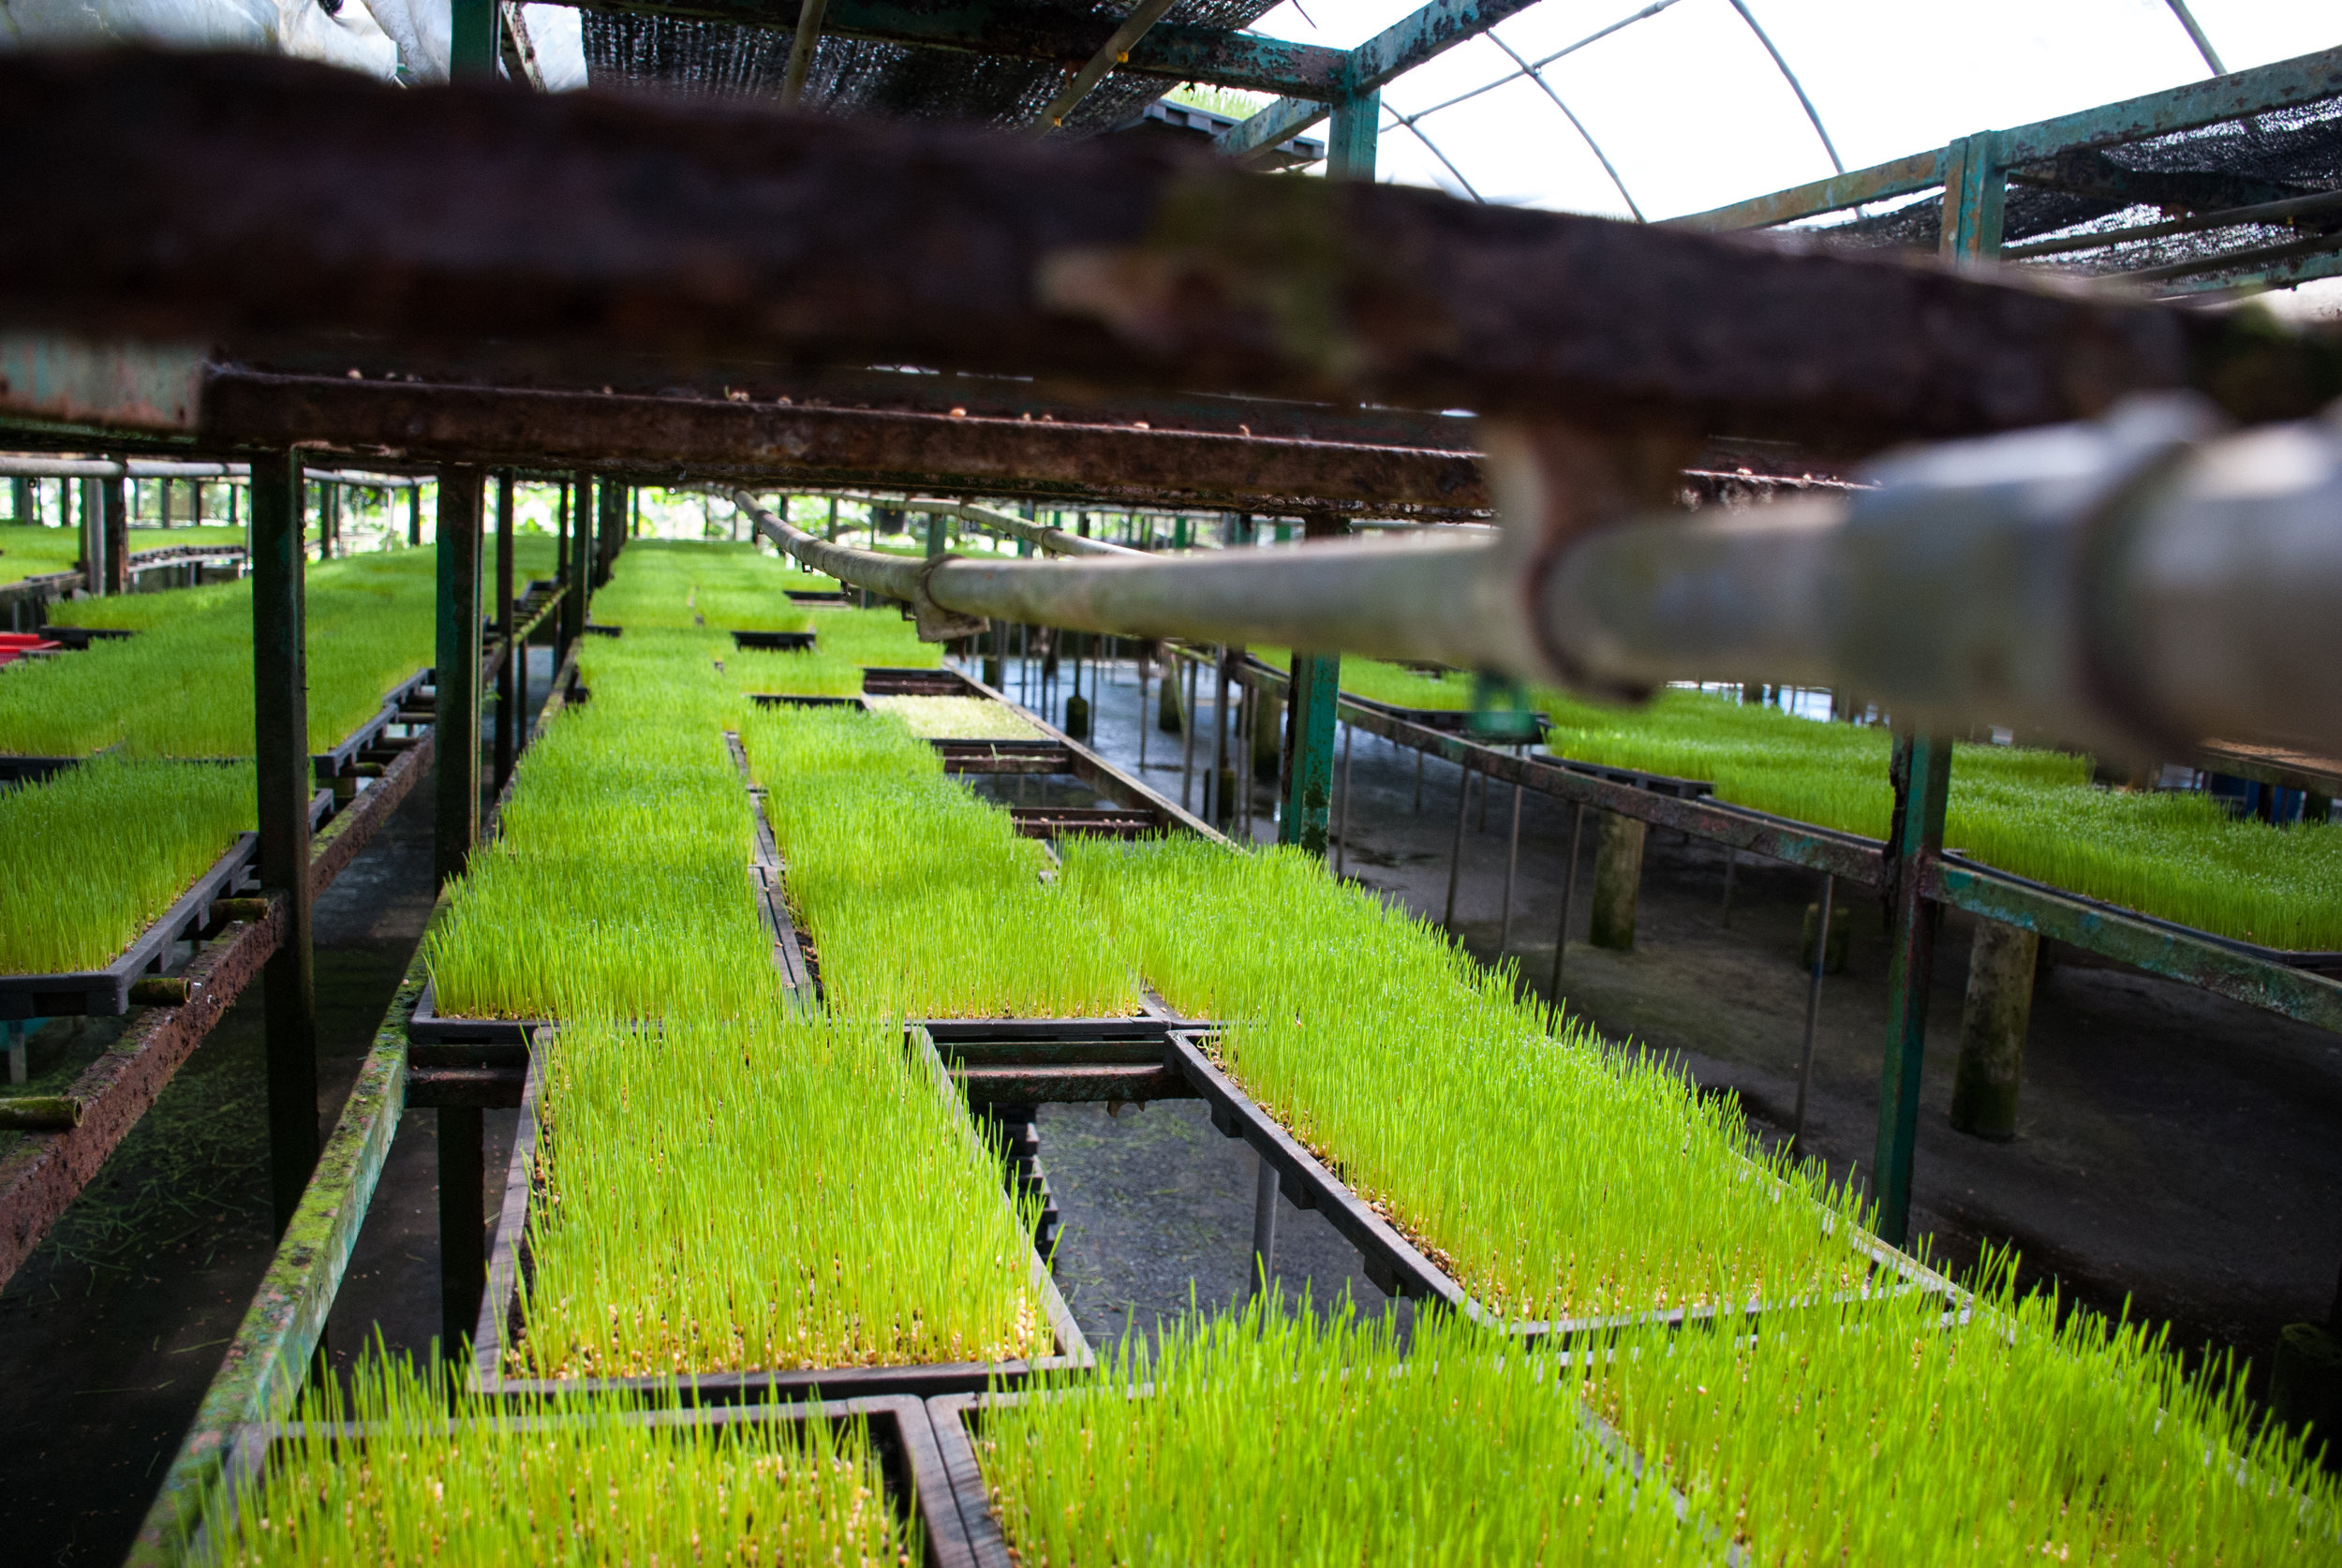 The wheatgrass is watered regularly with an automated sprinkler system